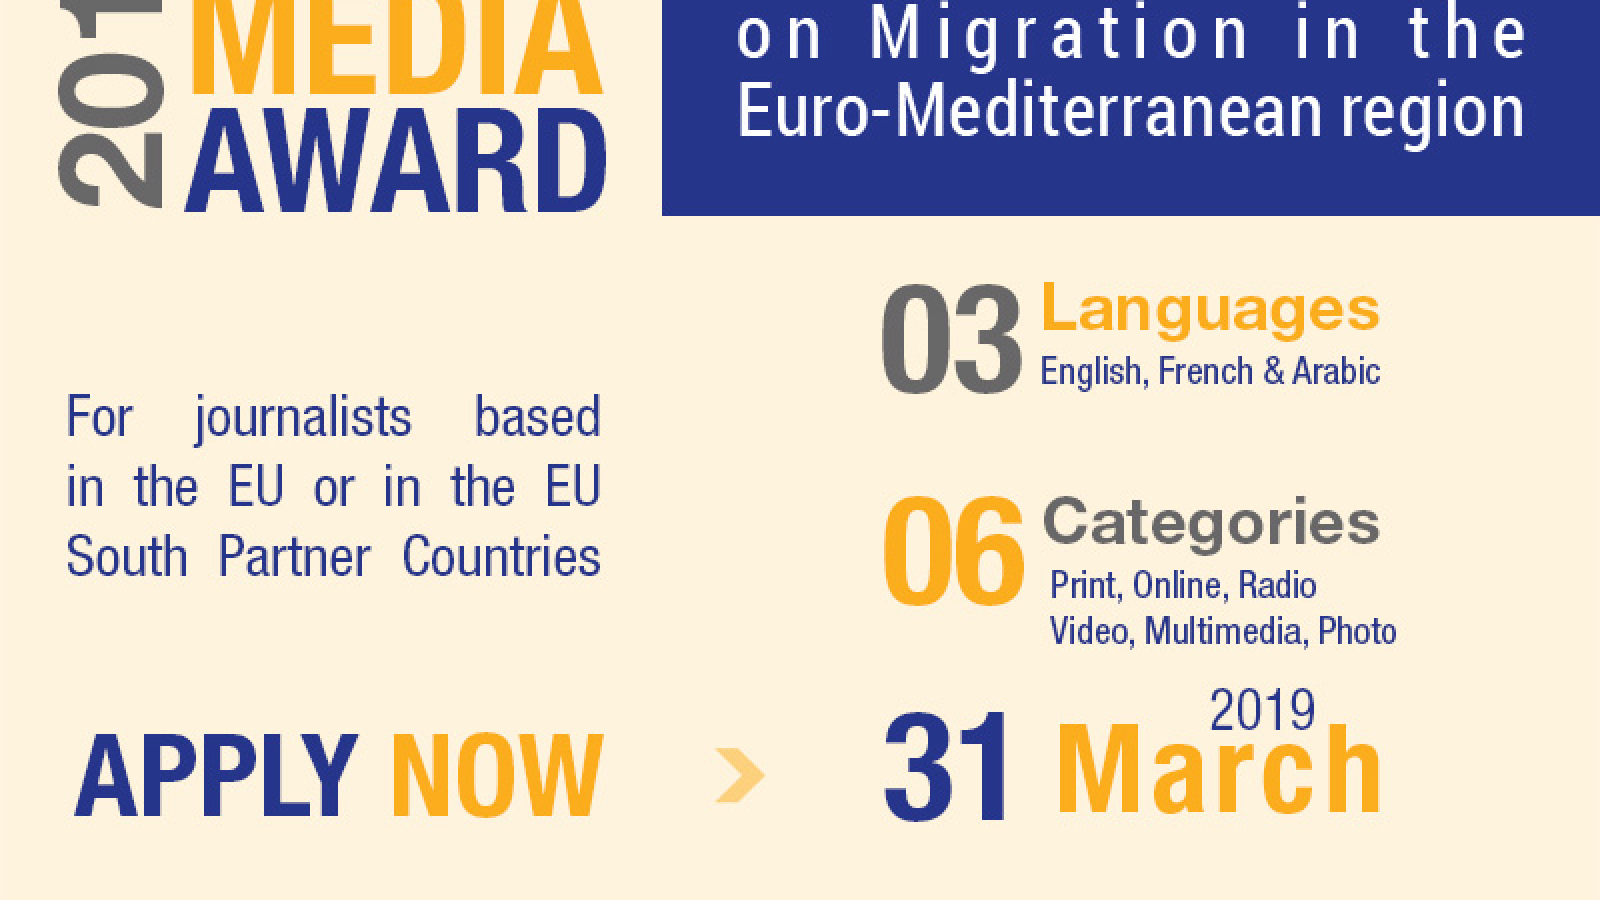 Migration Media Award 2019: Call for applications launched